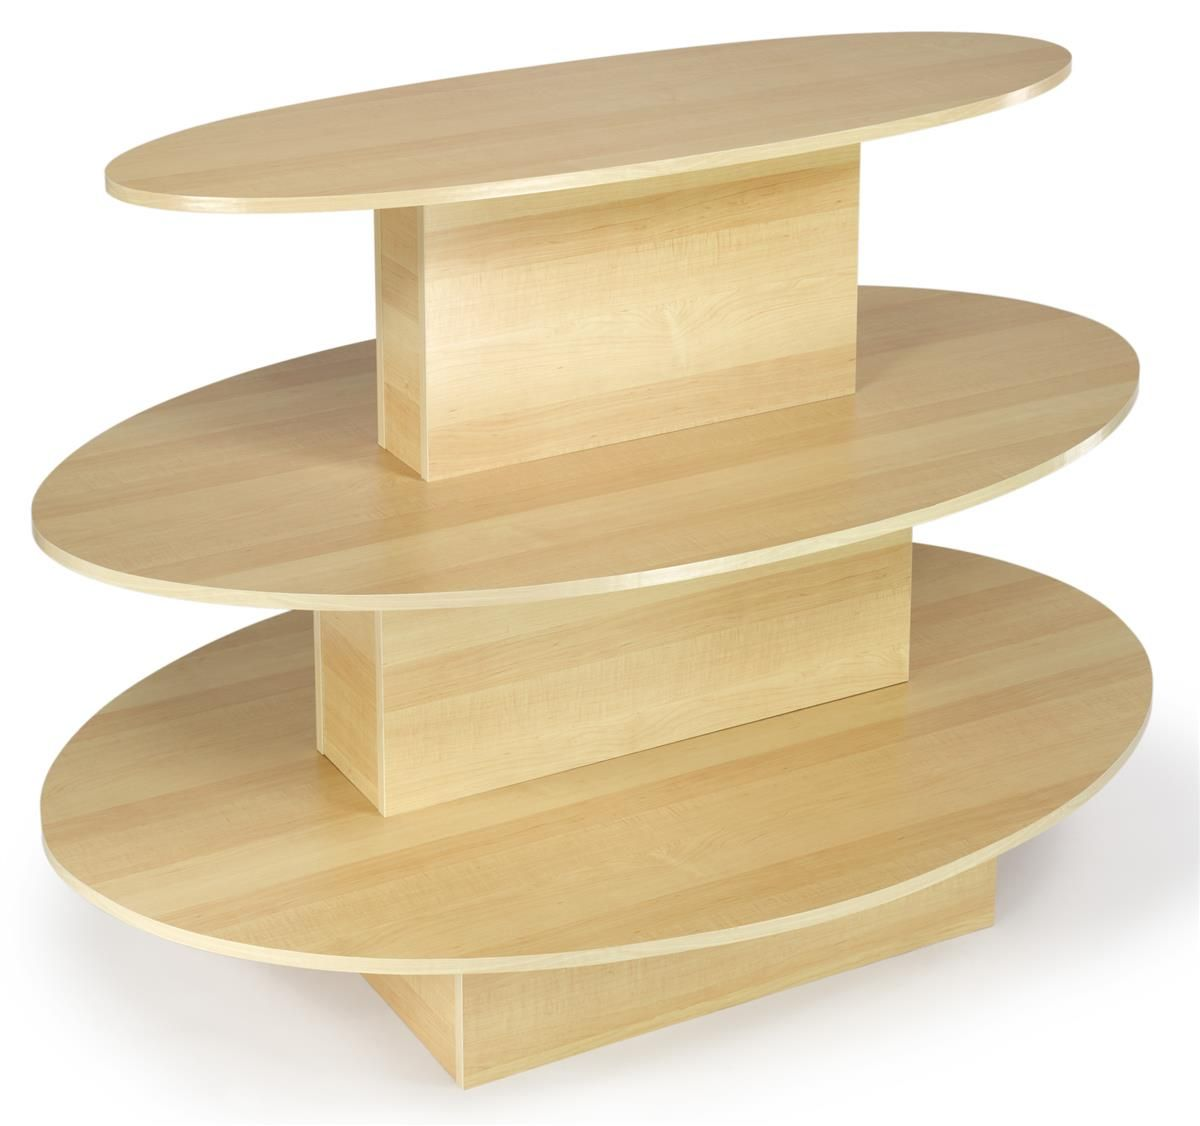 Tiered Display Table W 3 Shelves Oval Maple Display Furniture Store Displays Wood Display